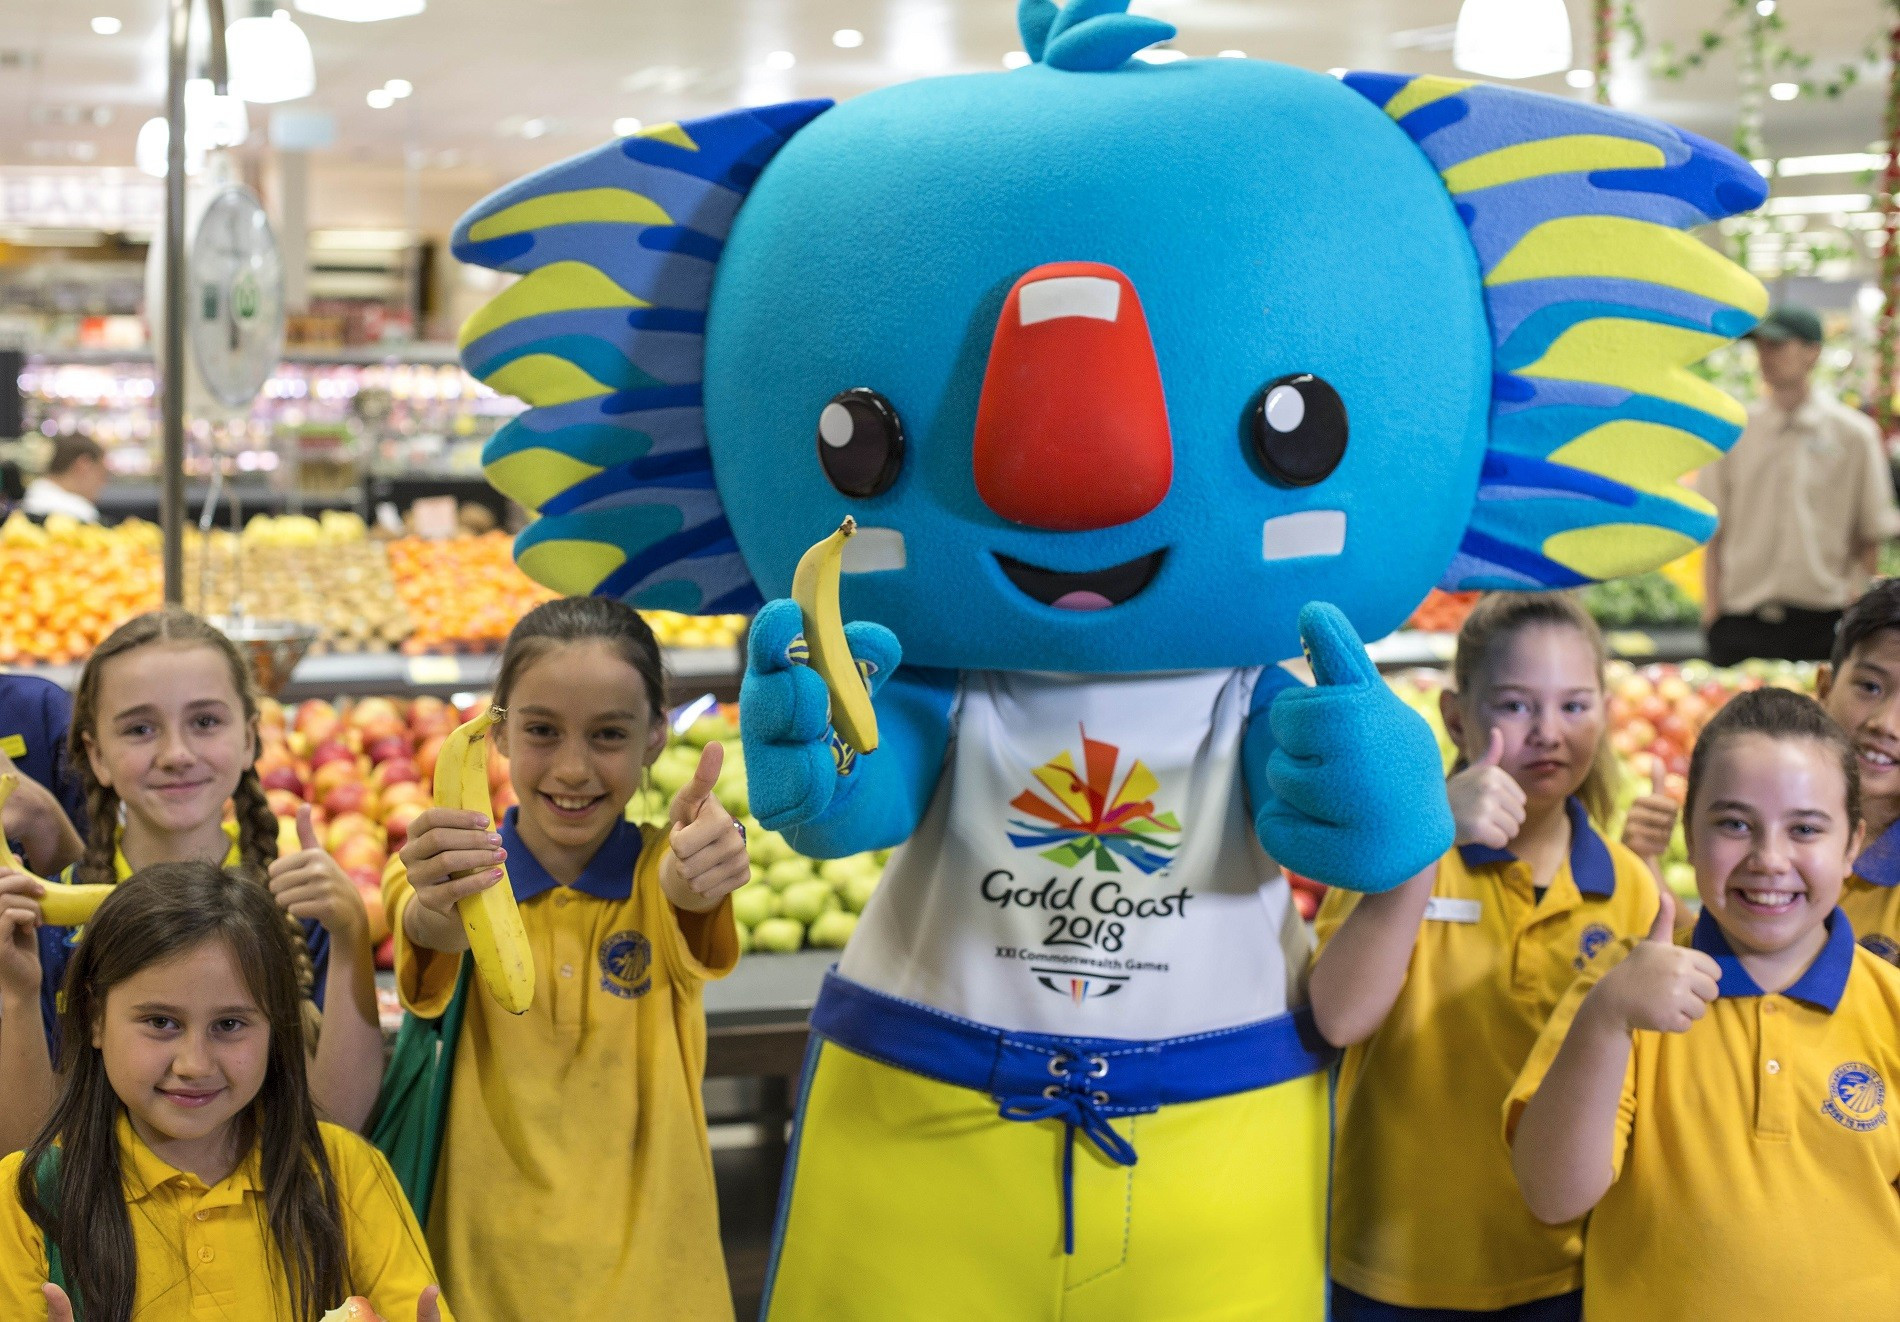 The supermarket chain become the latest company to partner with Gold Coast 2018 ©Gold Coast 2018